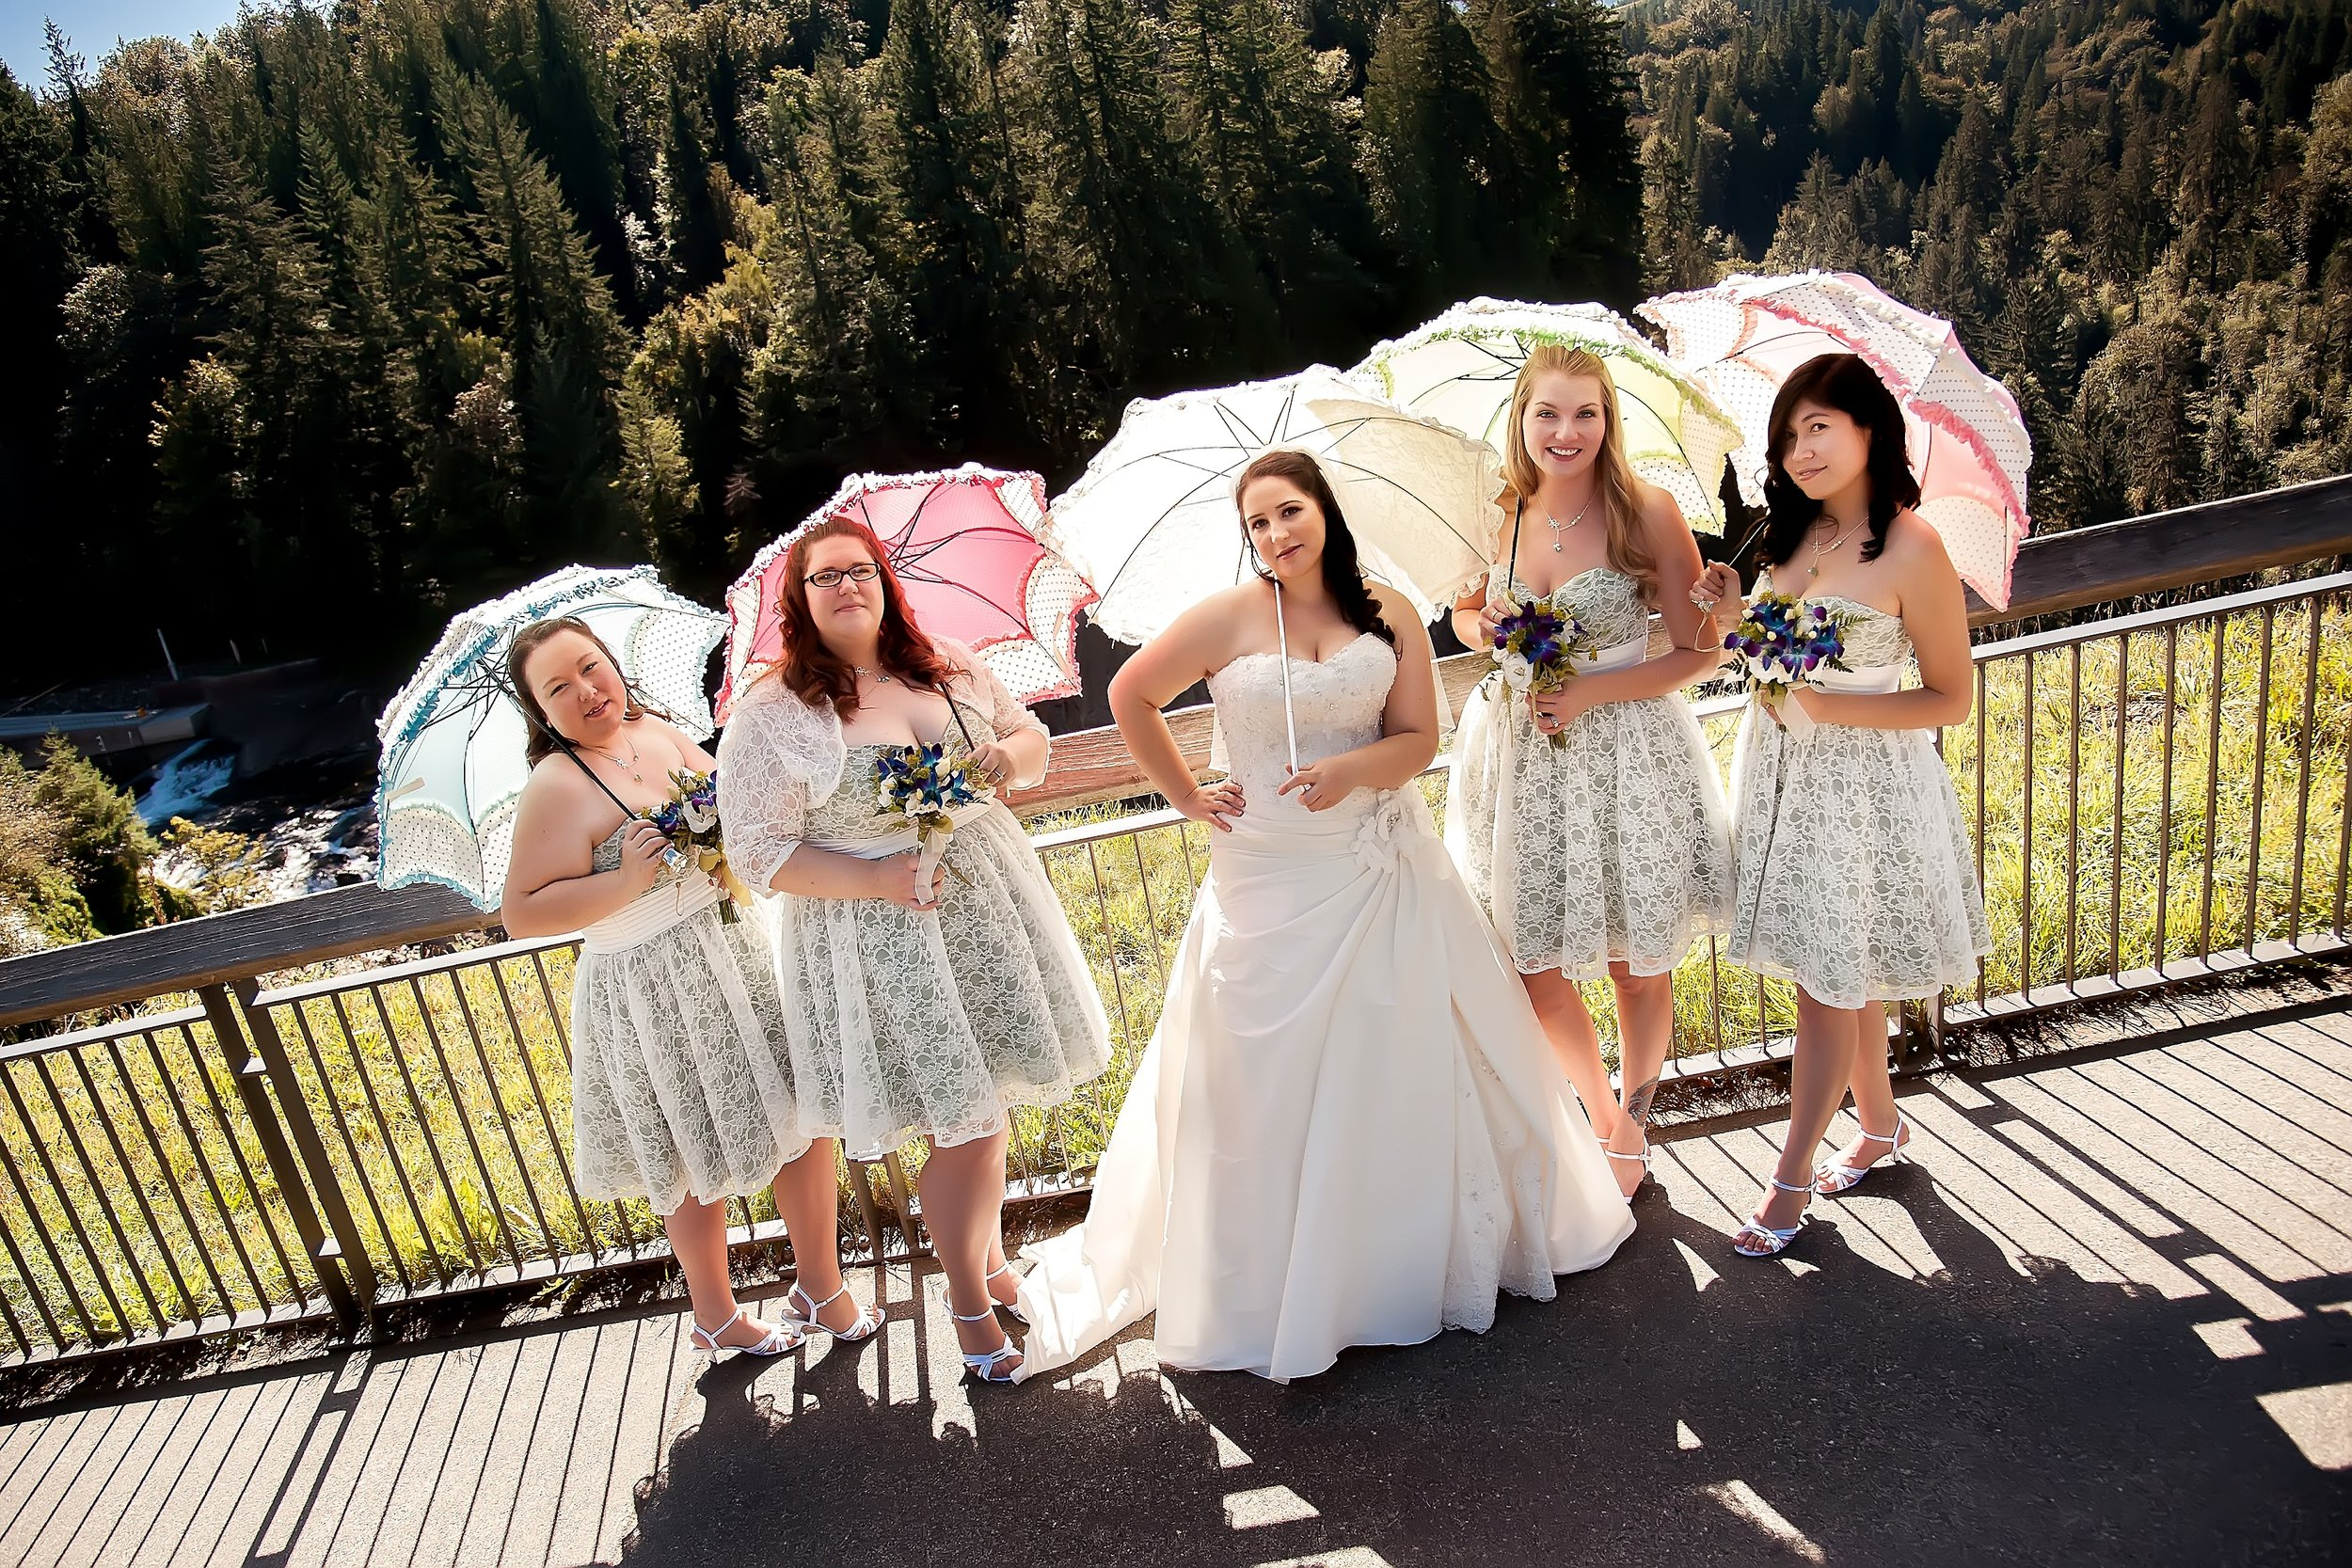 Bride & Bridesmaids with Umbrellas Looking Sassy.jpg